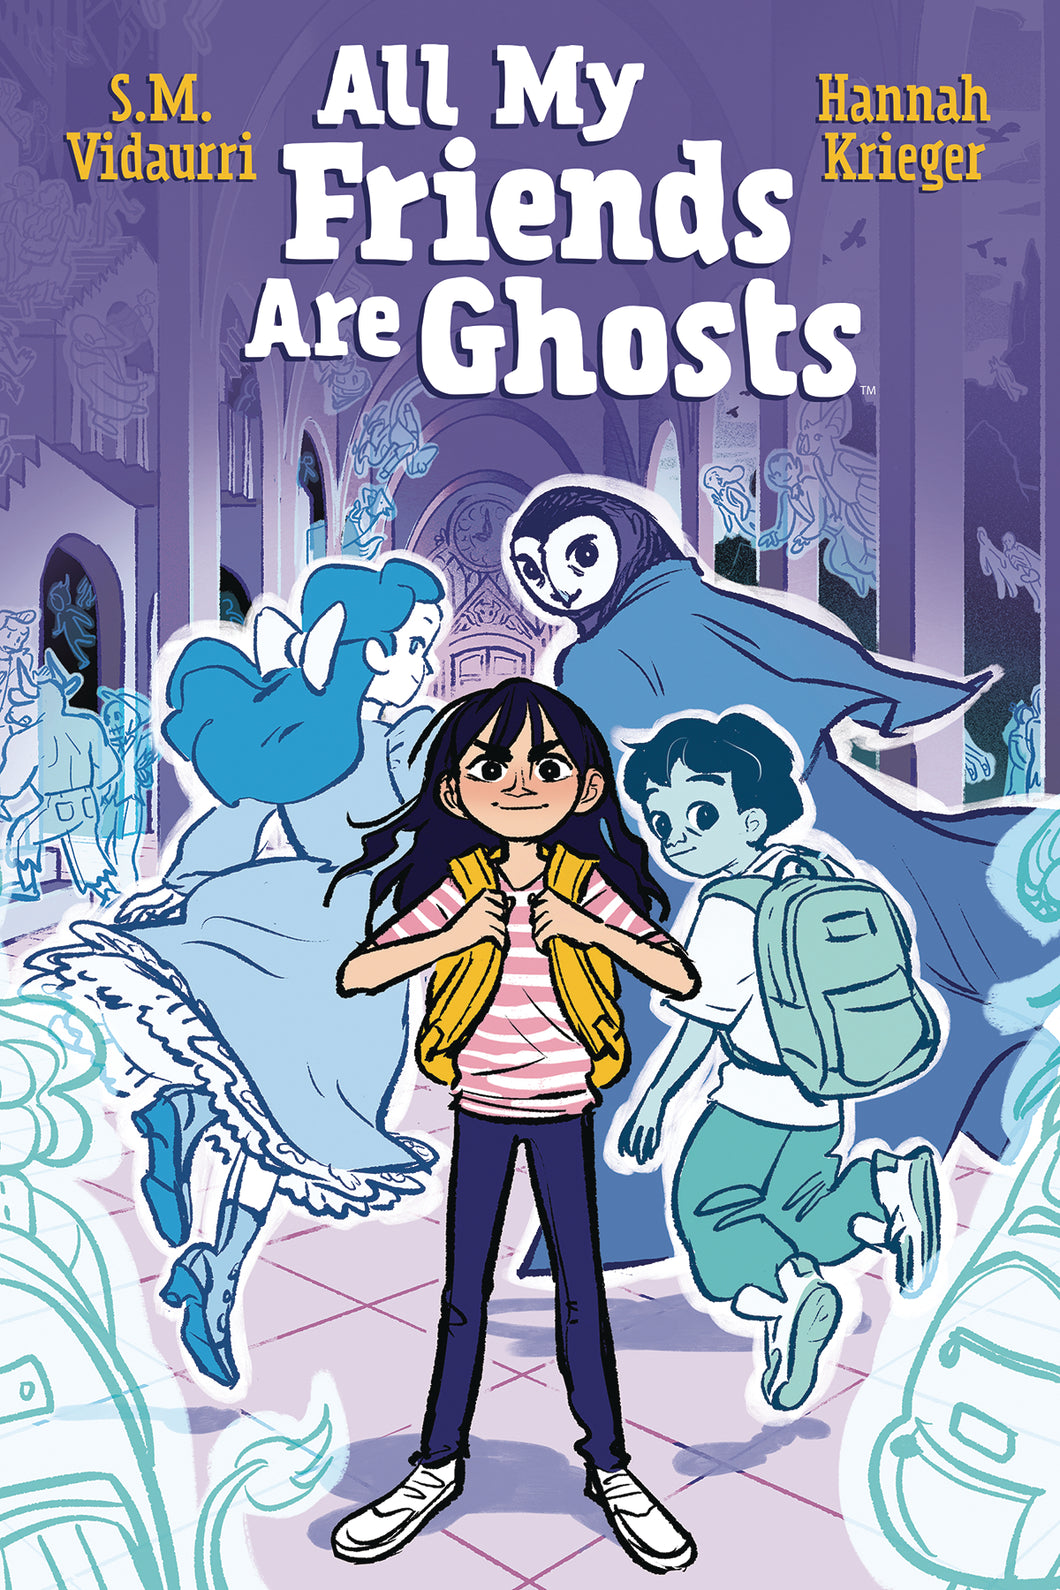 ALL MY FRIENDS ARE GHOSTS ORIGINAL GN (C: 0-1-2)